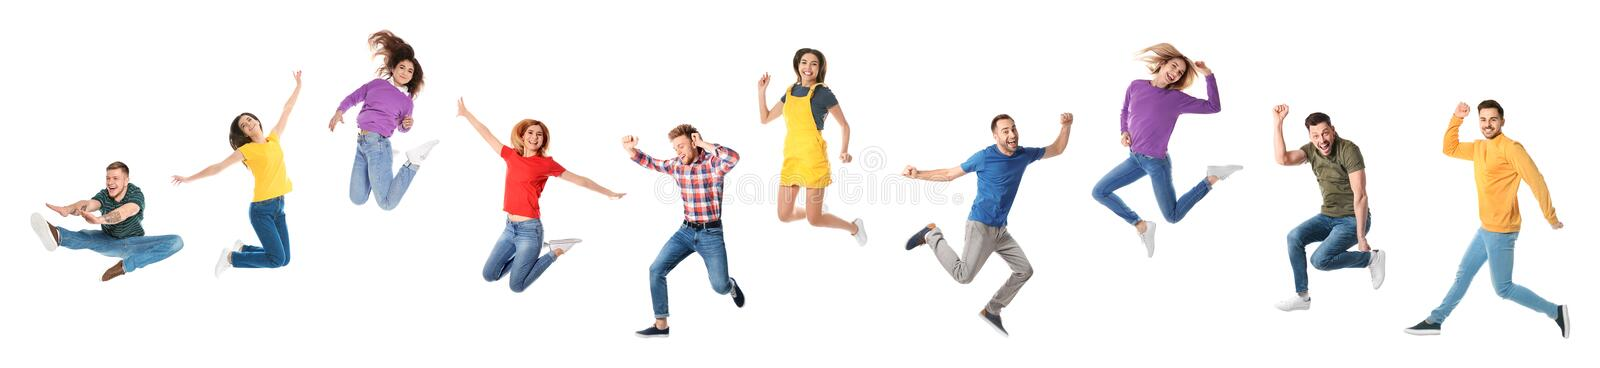 Collage of emotional people jumping on white background stock photo